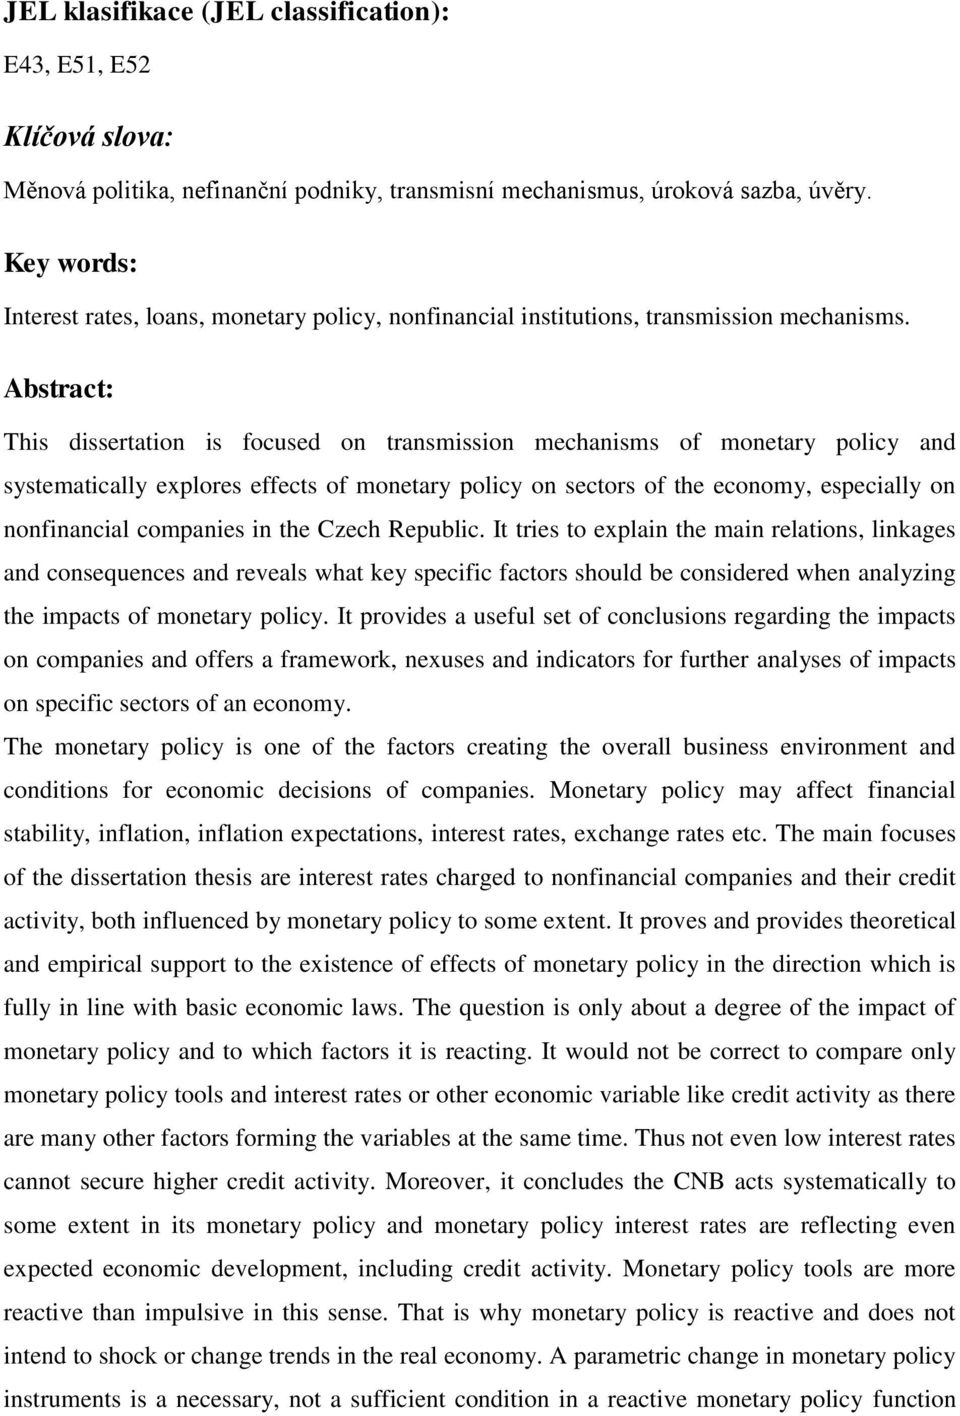 Abstract: This dissertation is focused on transmission mechanisms of monetary policy and systematically explores effects of monetary policy on sectors of the economy, especially on nonfinancial